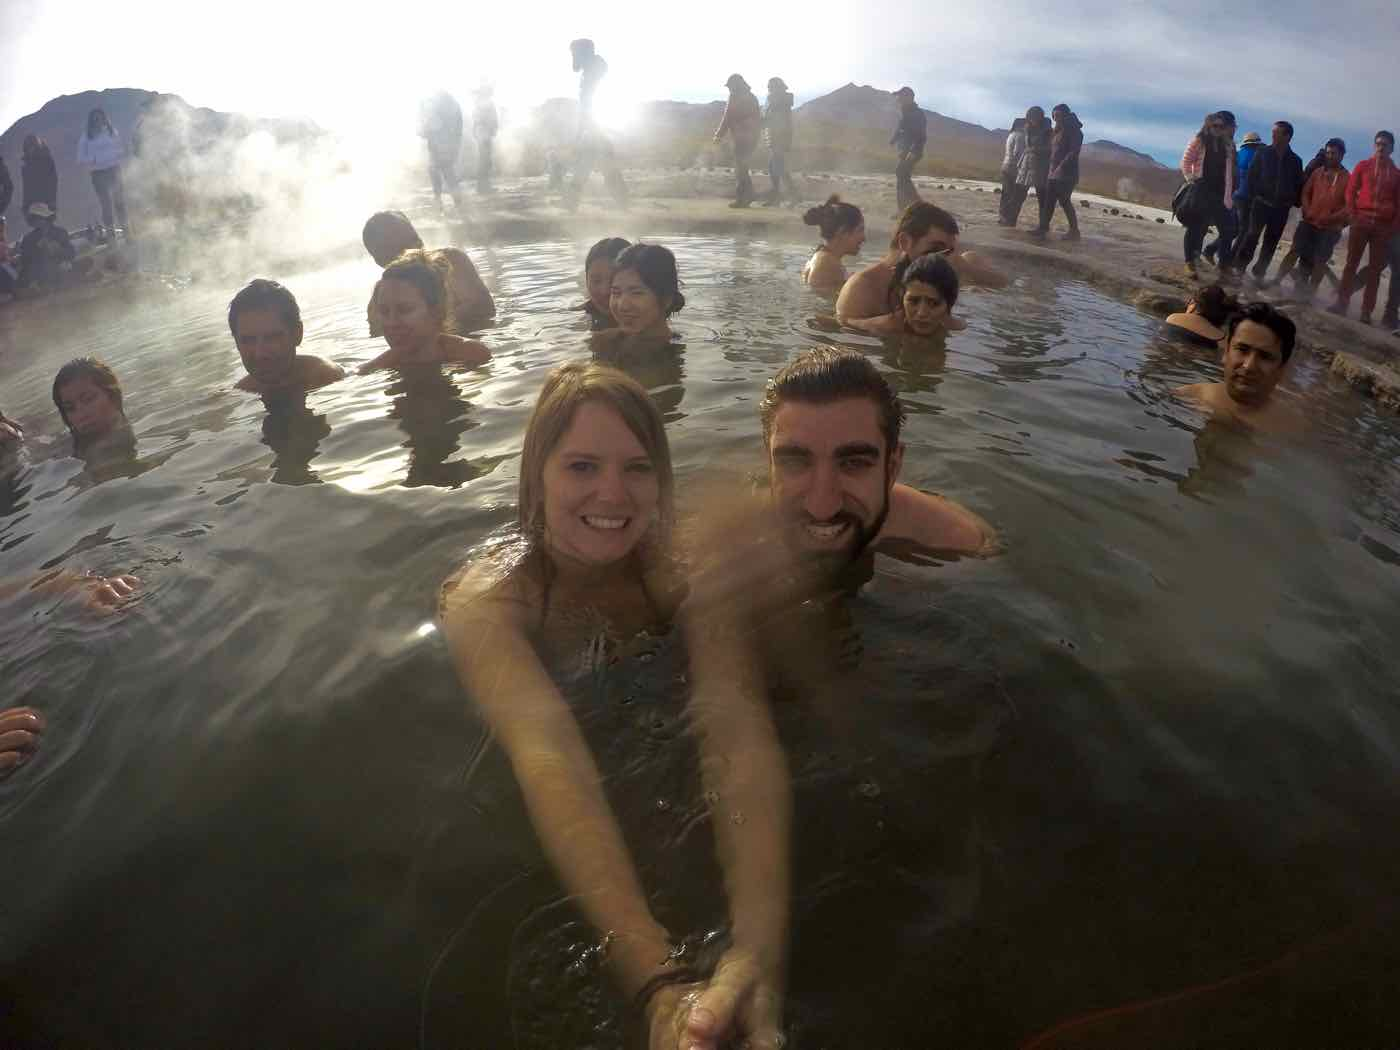 Swimming in the hot springs at El Tatio Geysers